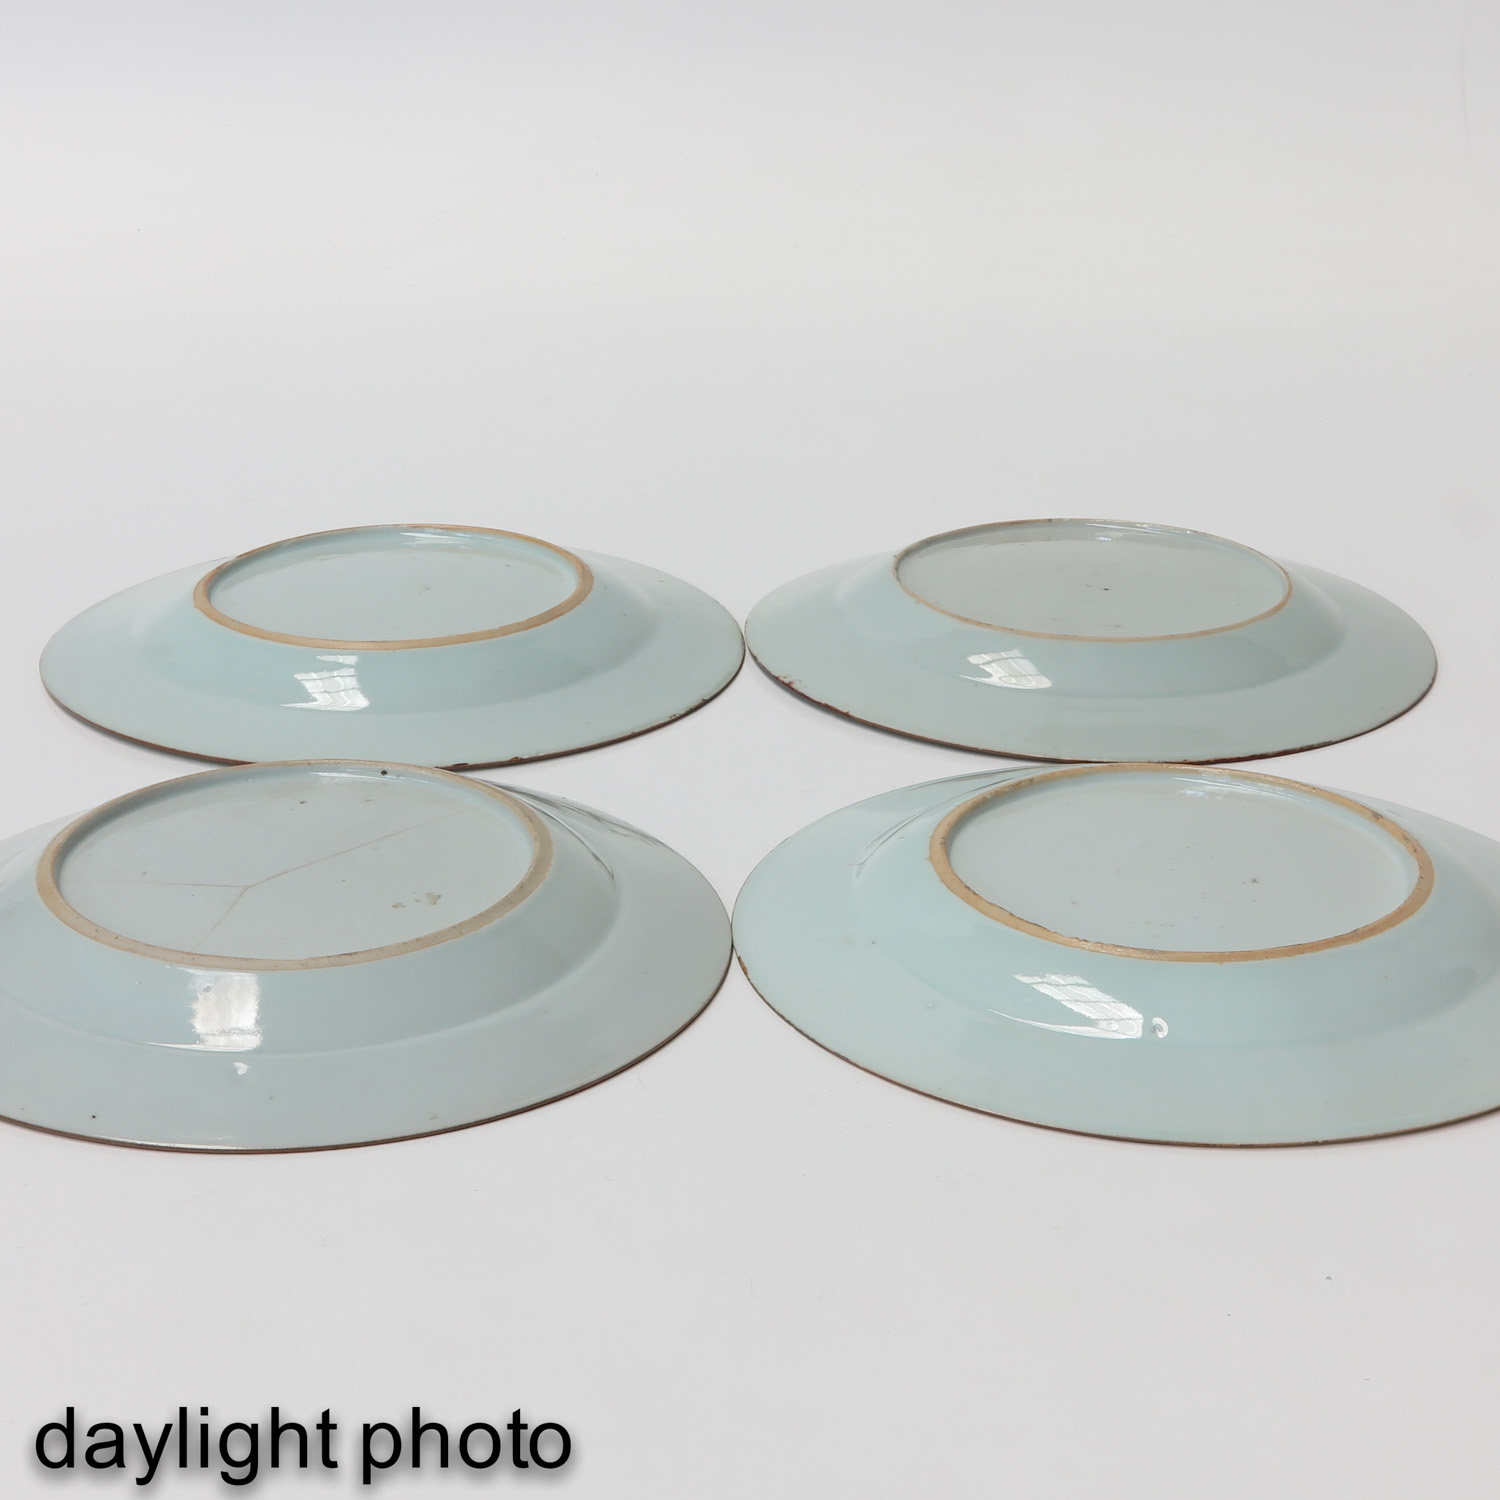 A Collection of 4 Famille Rose Plates - Image 8 of 10